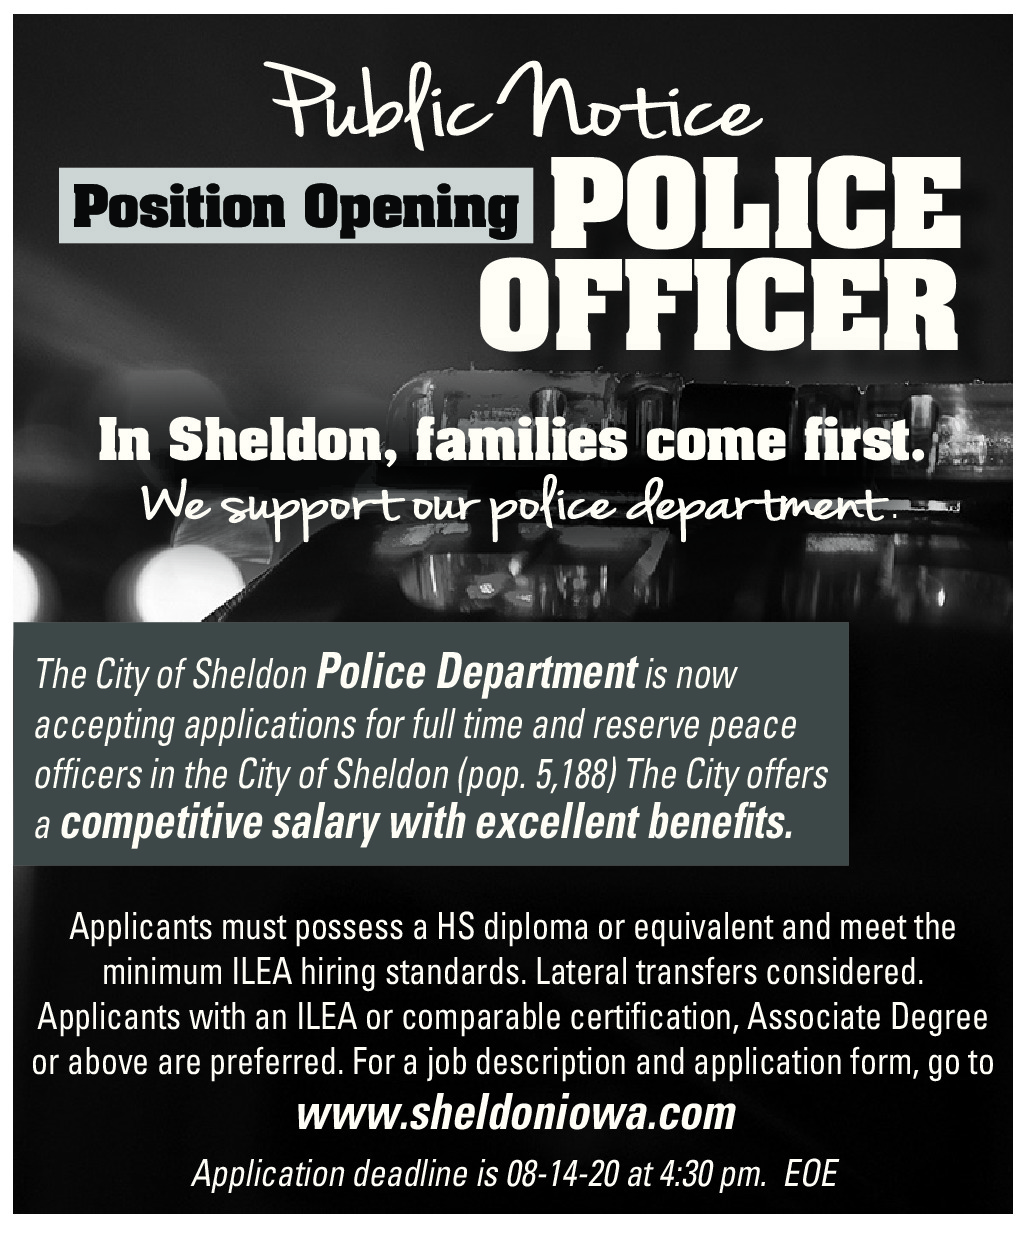 Sheldon Police Department Now Hiring Full-Time Peace Officer